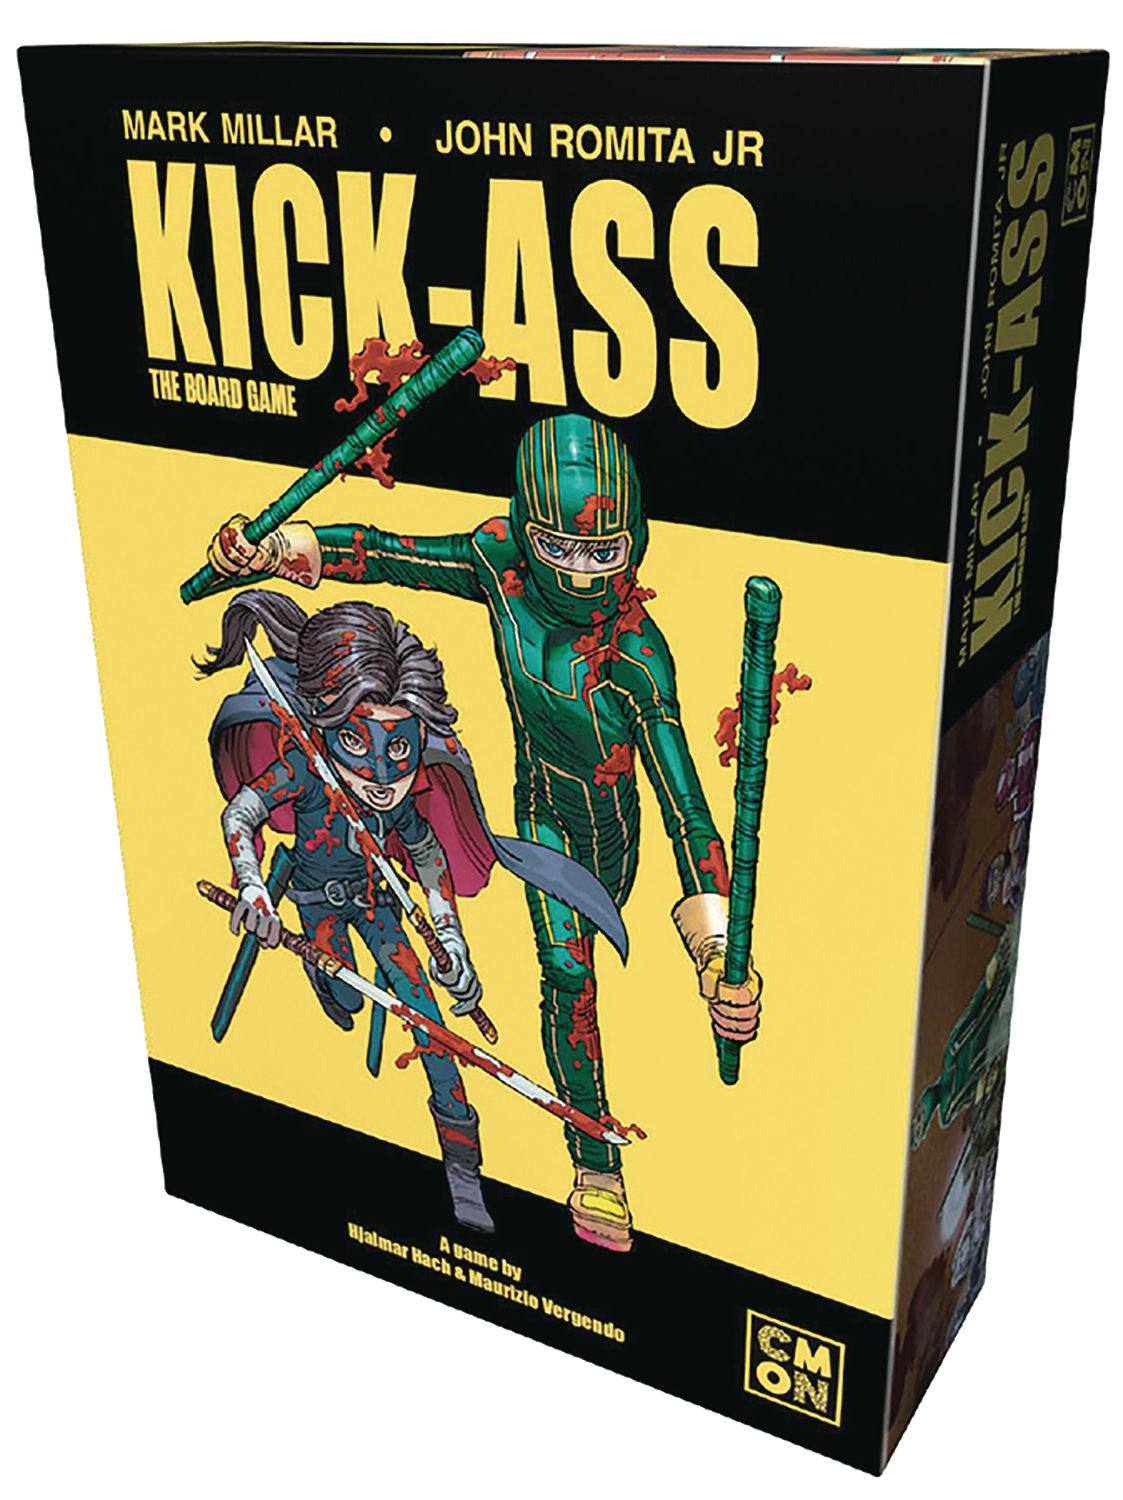 KICK ASS BOARD GAME